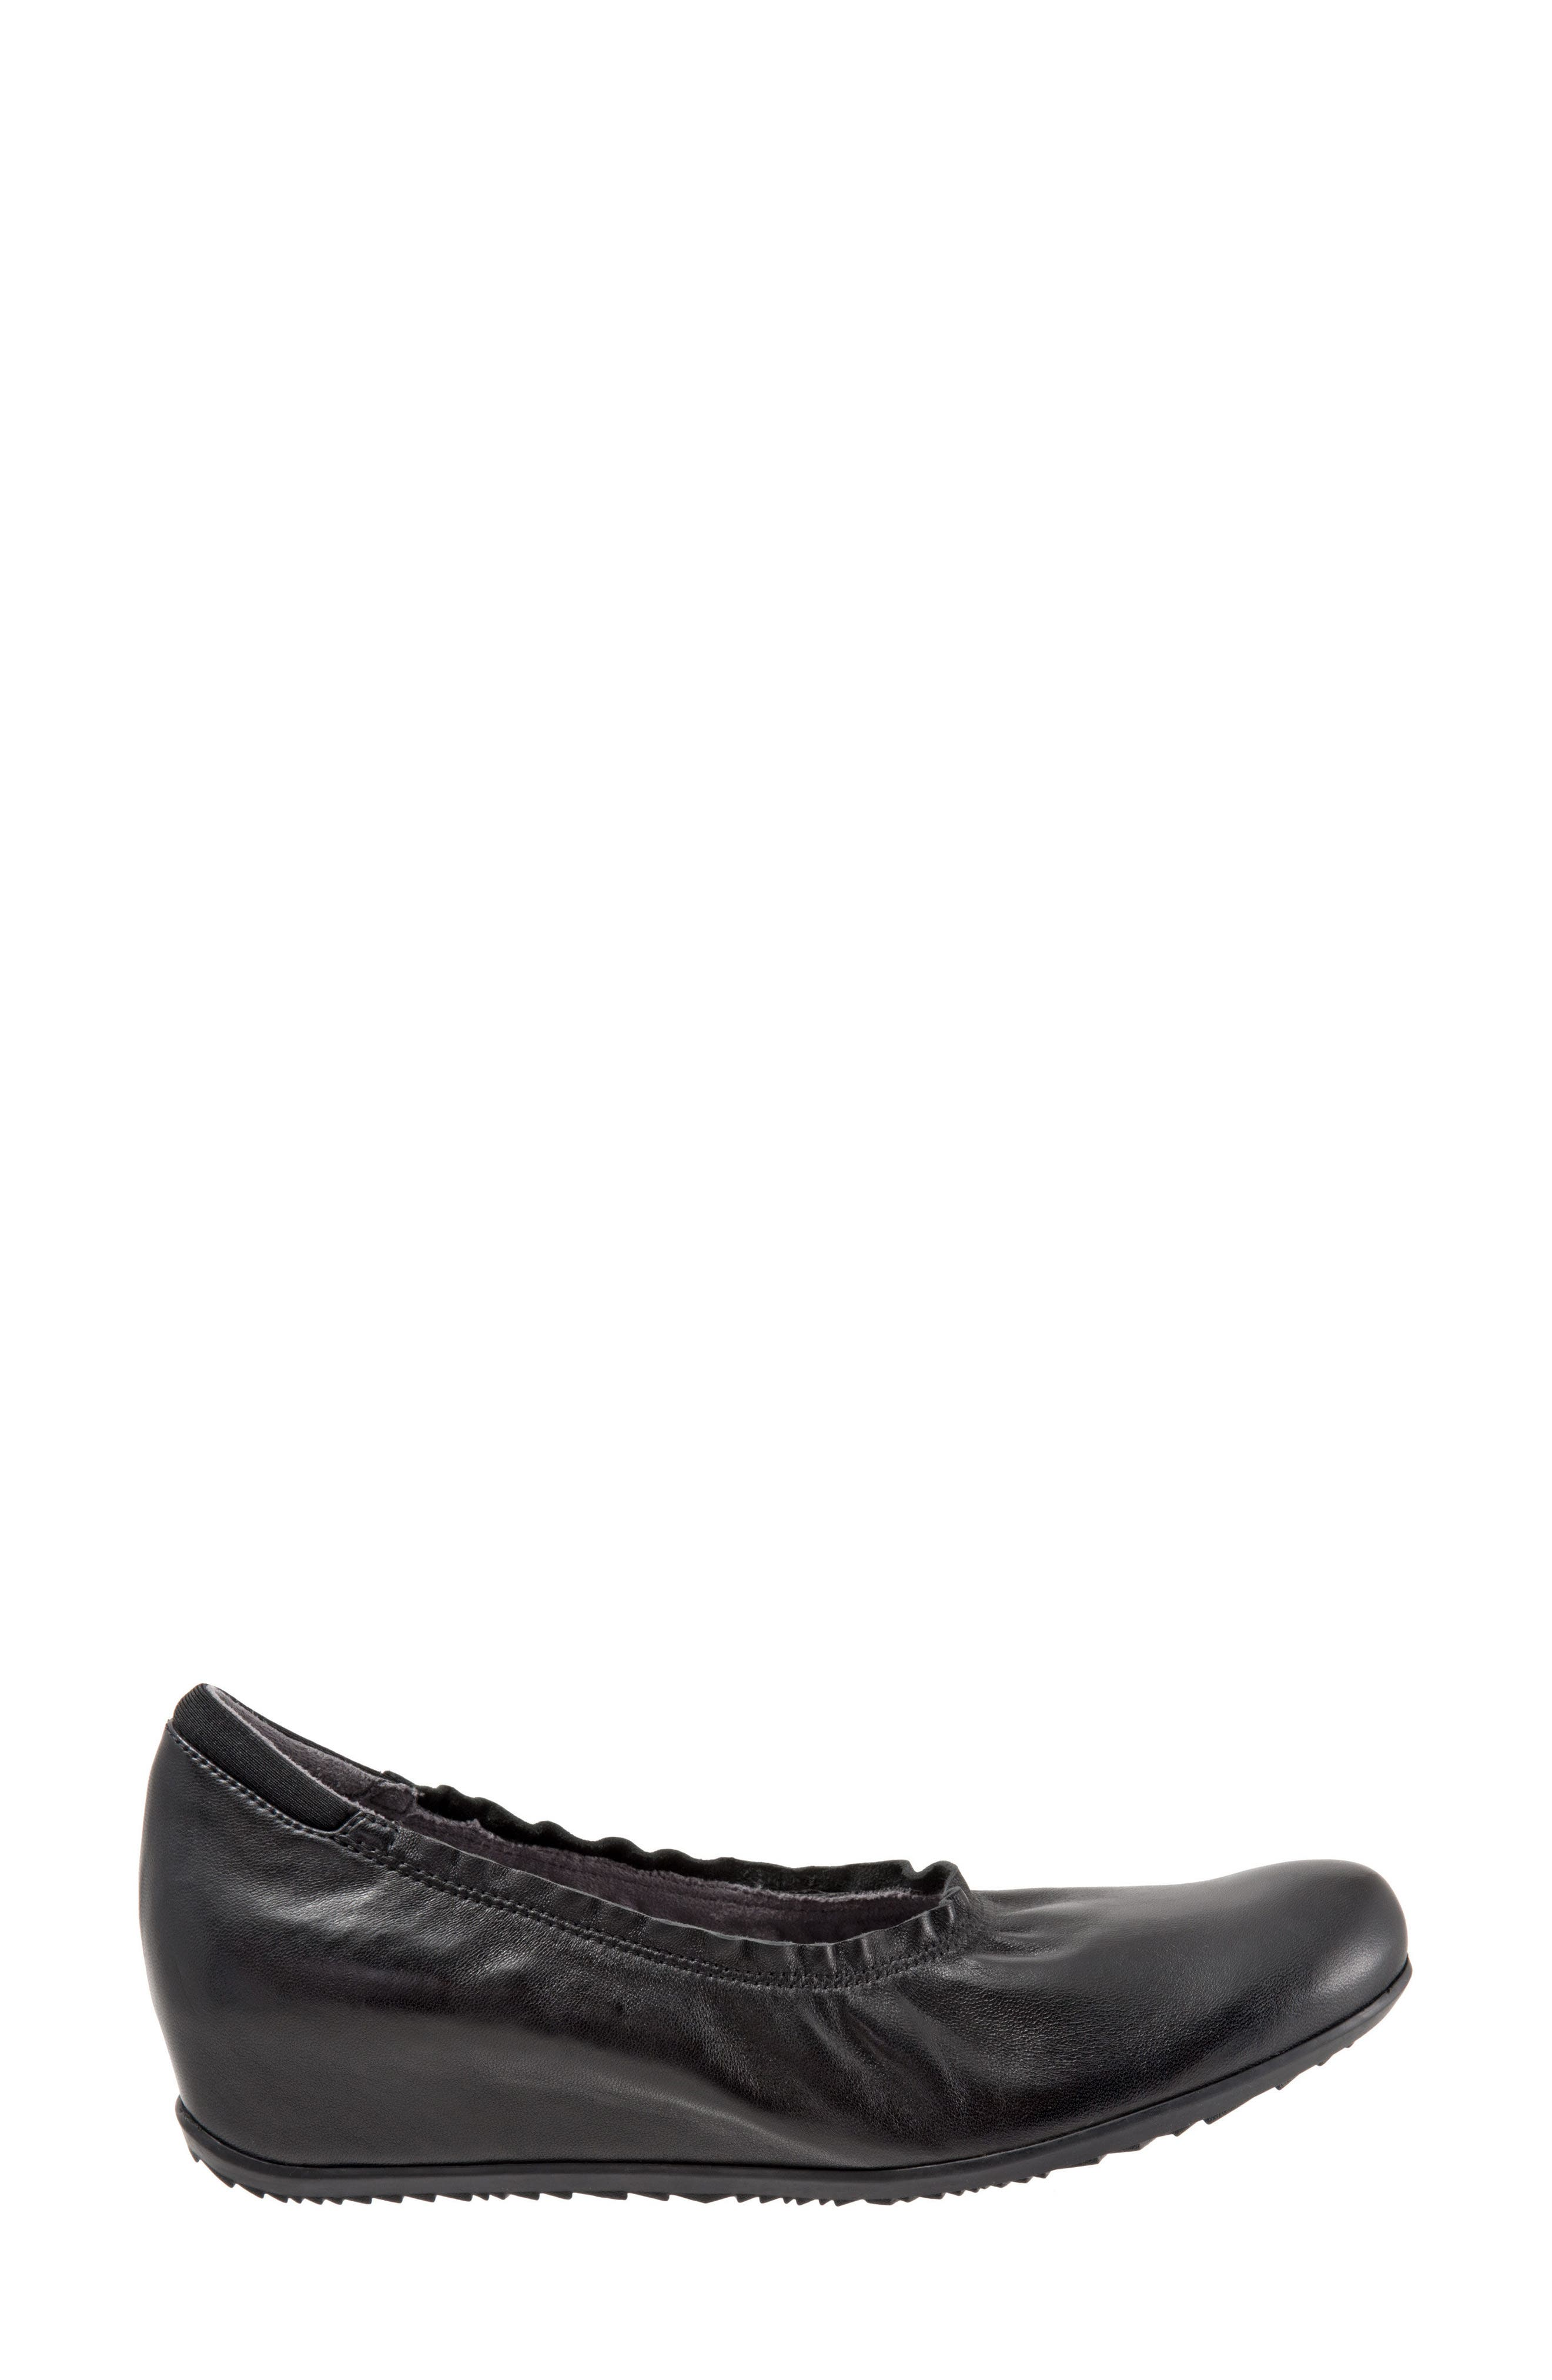 SOFTWALK<SUP>®</SUP>, Wish Ballet Wedge, Alternate thumbnail 3, color, BLACK LEATHER